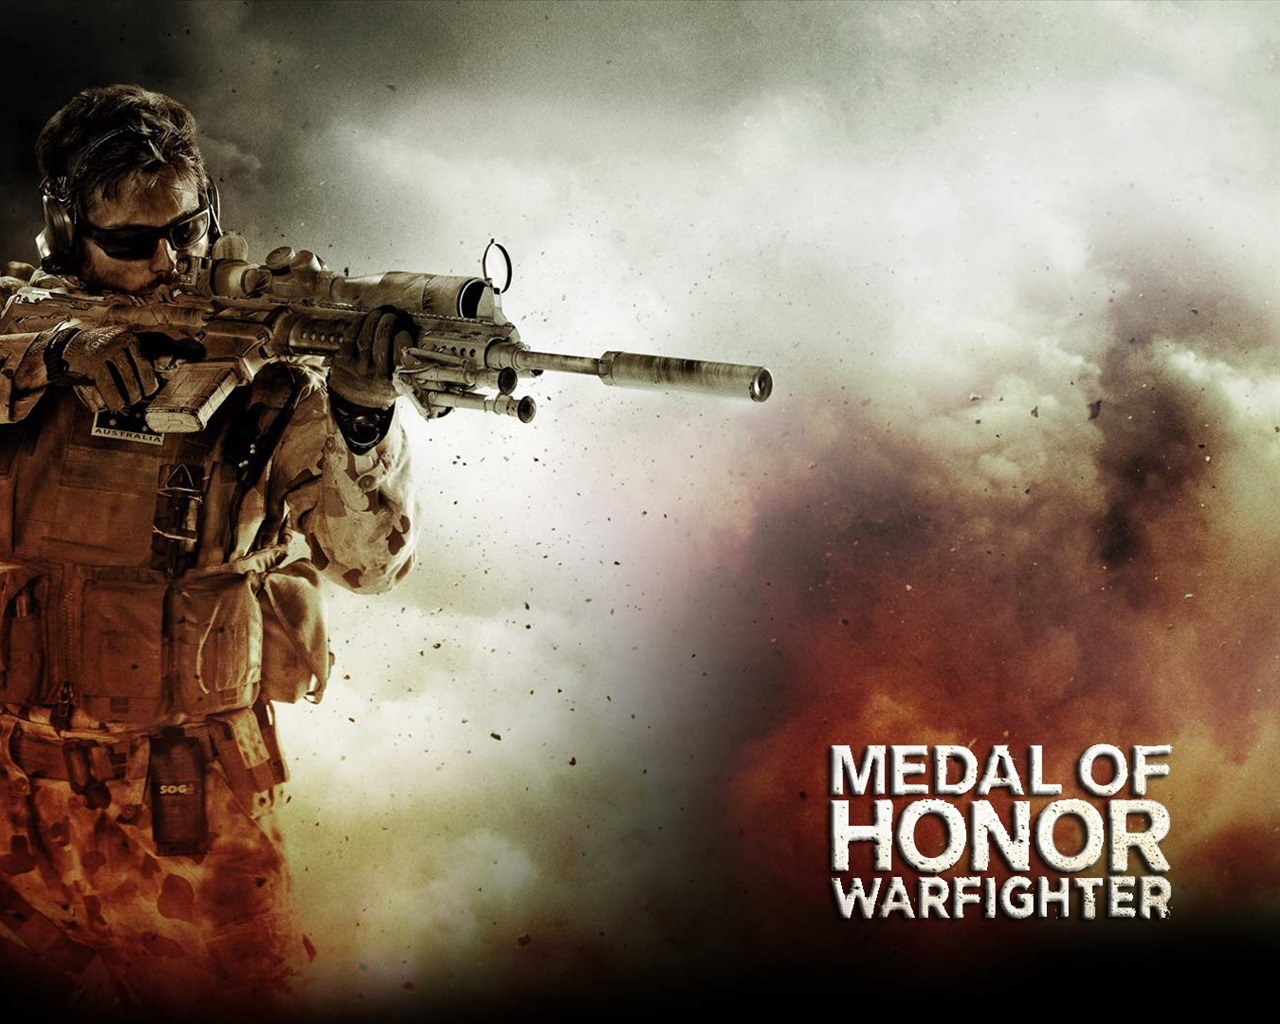 Free Download Medal Of Honor Warfighter Game Hd Wallpaper 04